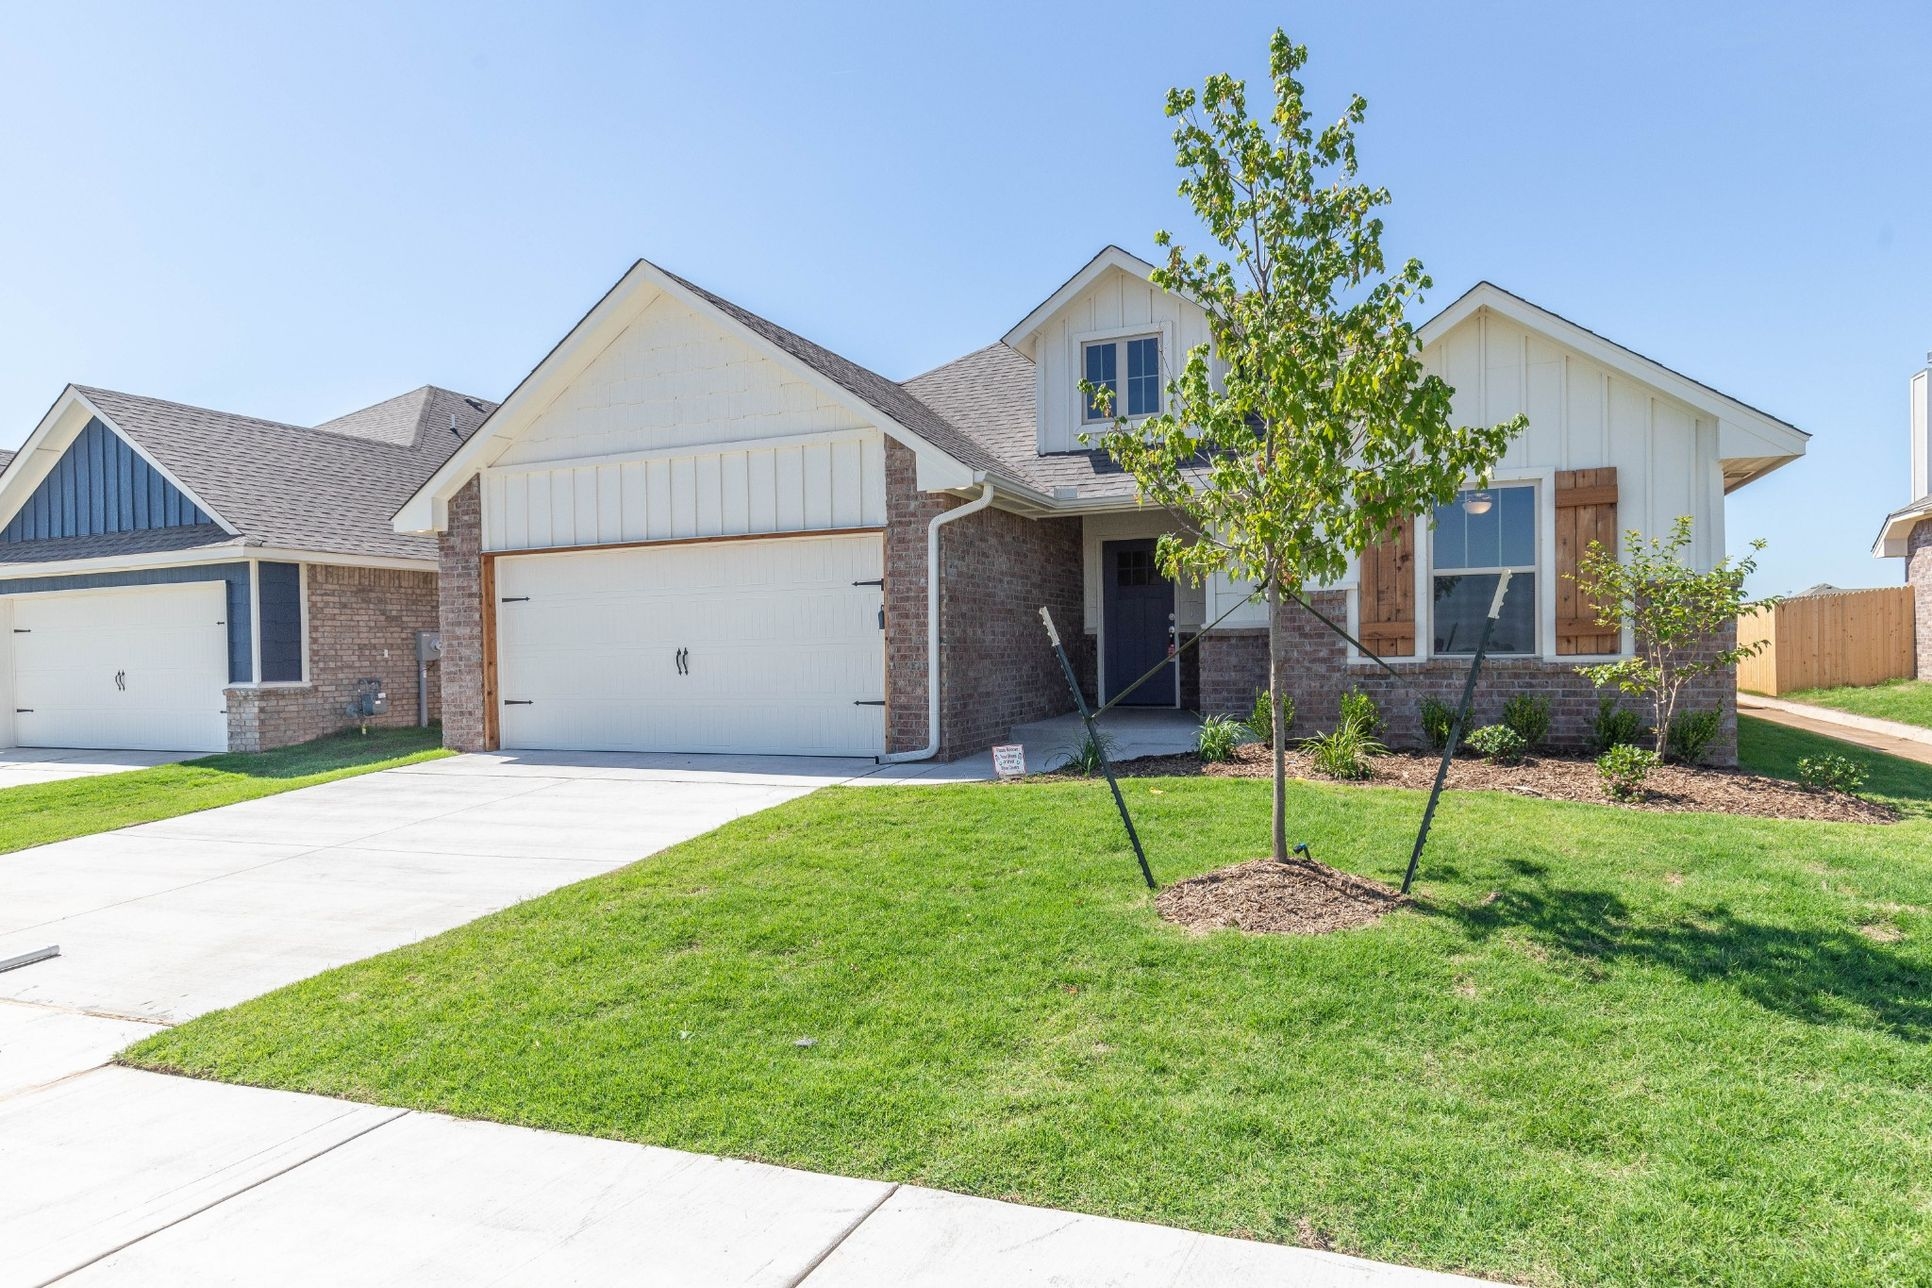 Homes by Taber Drake Floorplan - 9100 NW 119th St